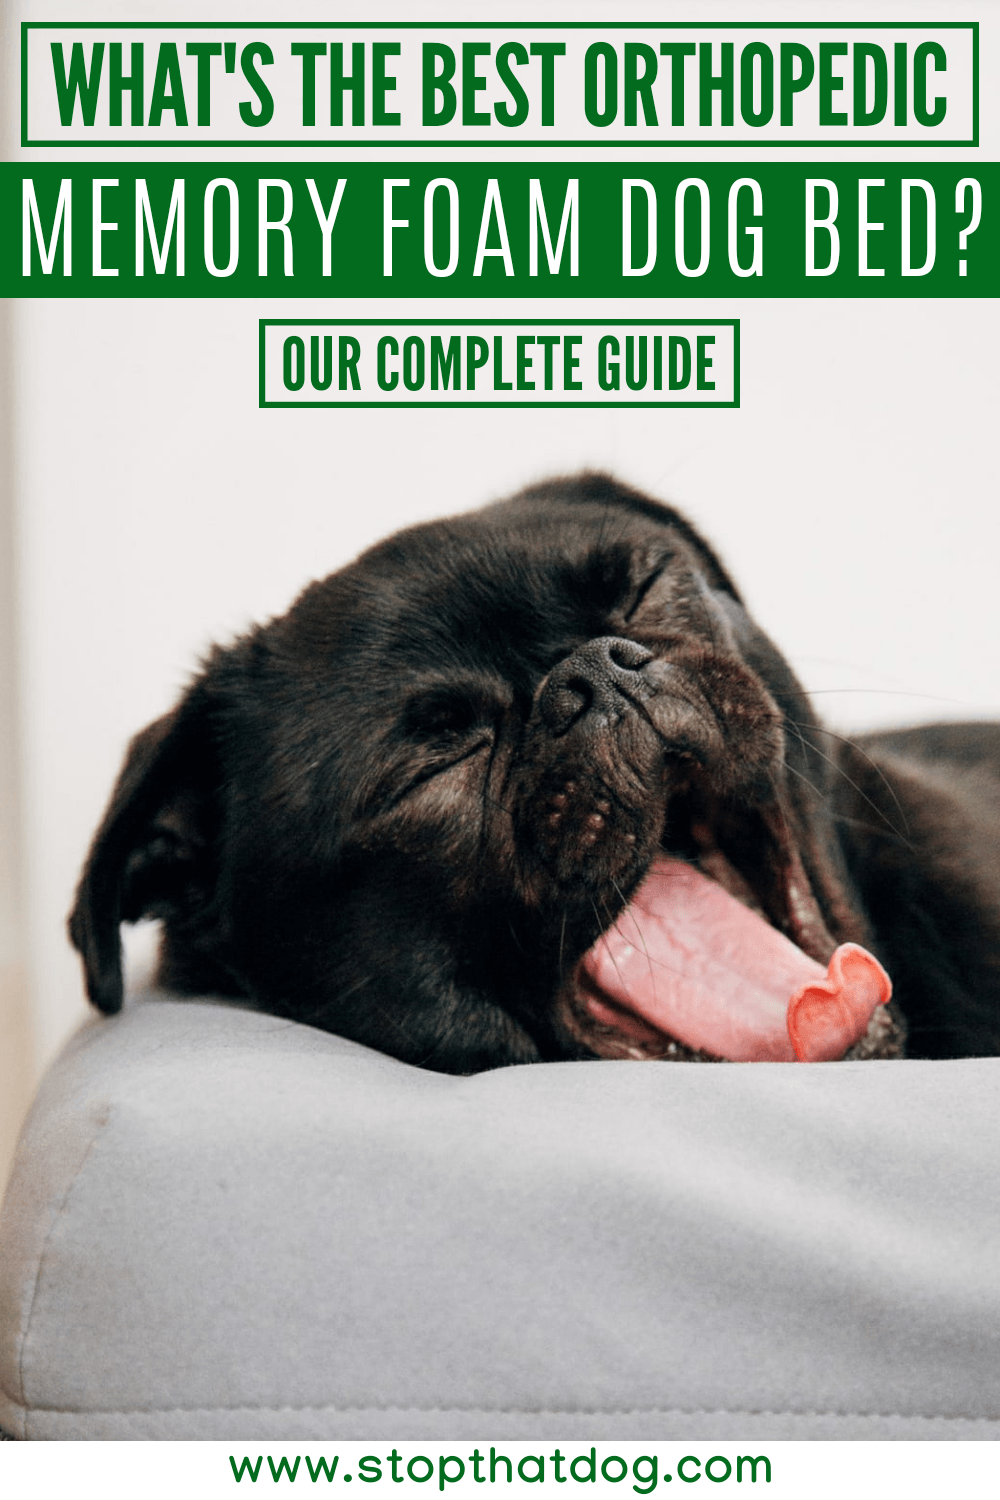 Want the best orthopedic memory foam dog bed? If so, this guide reveals the best options on the market. These won\'t let you down. Come take a look.